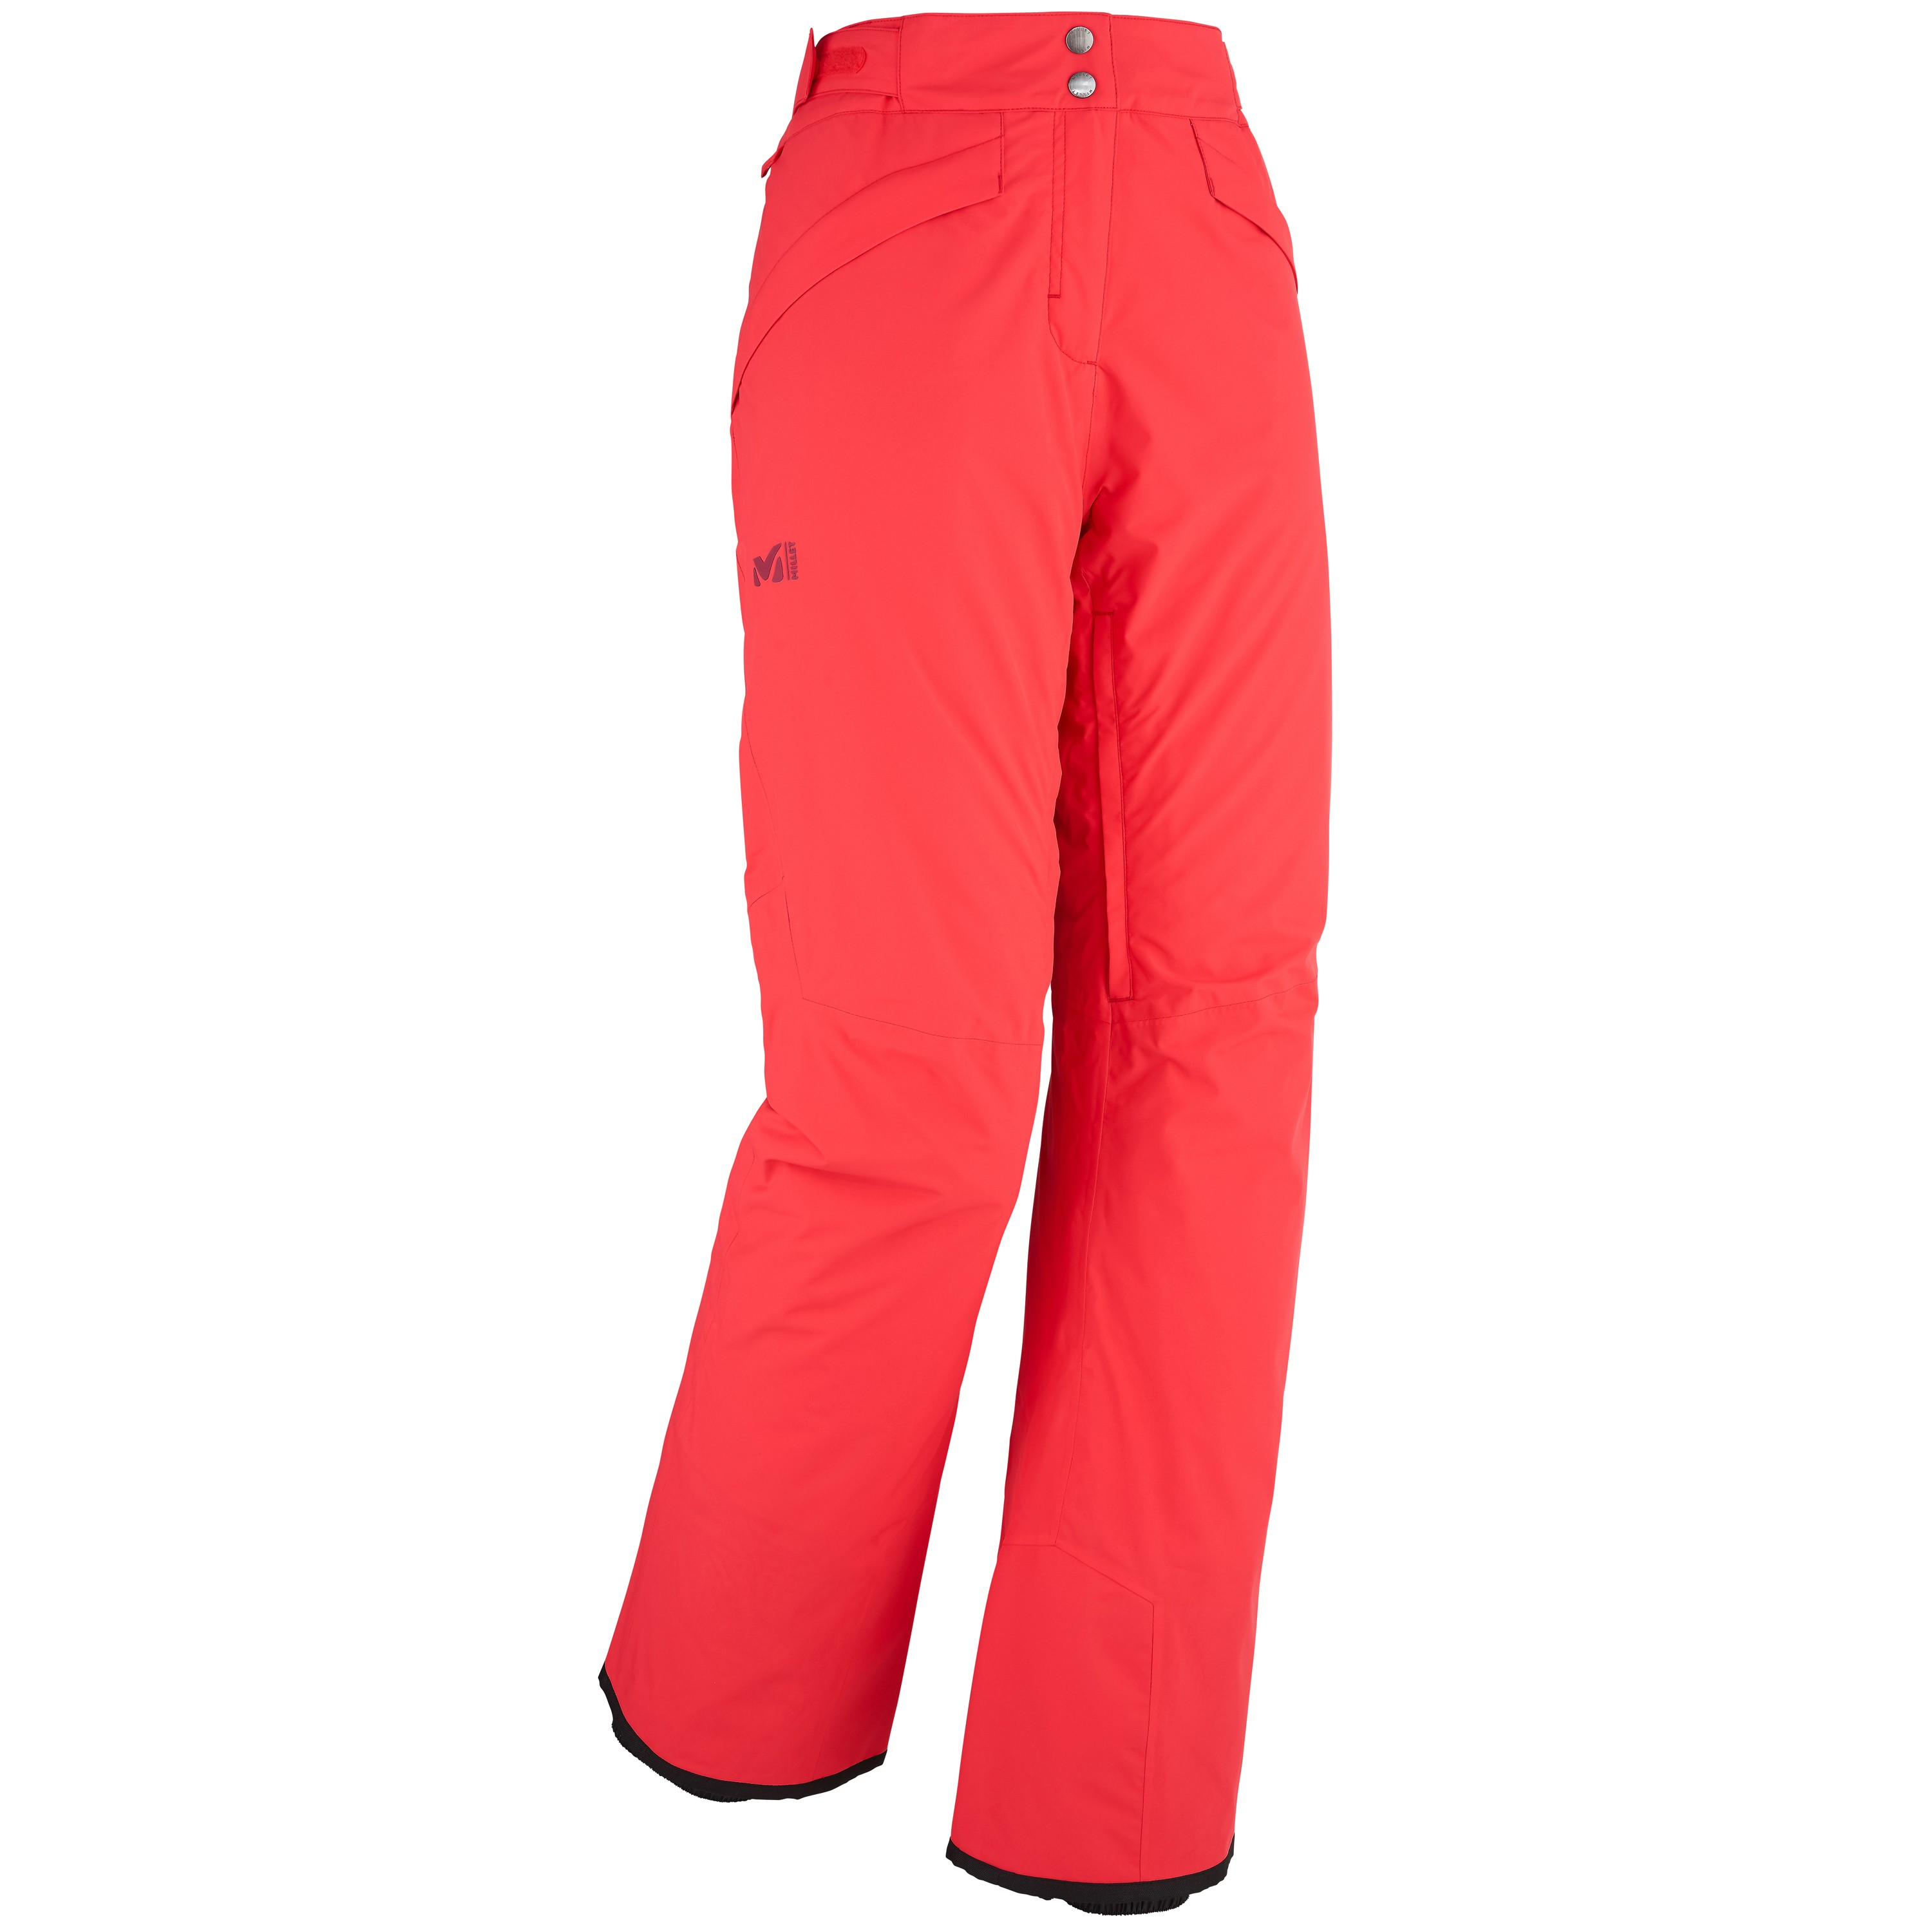 LD CYPRESS MOUNTAIN II PANT